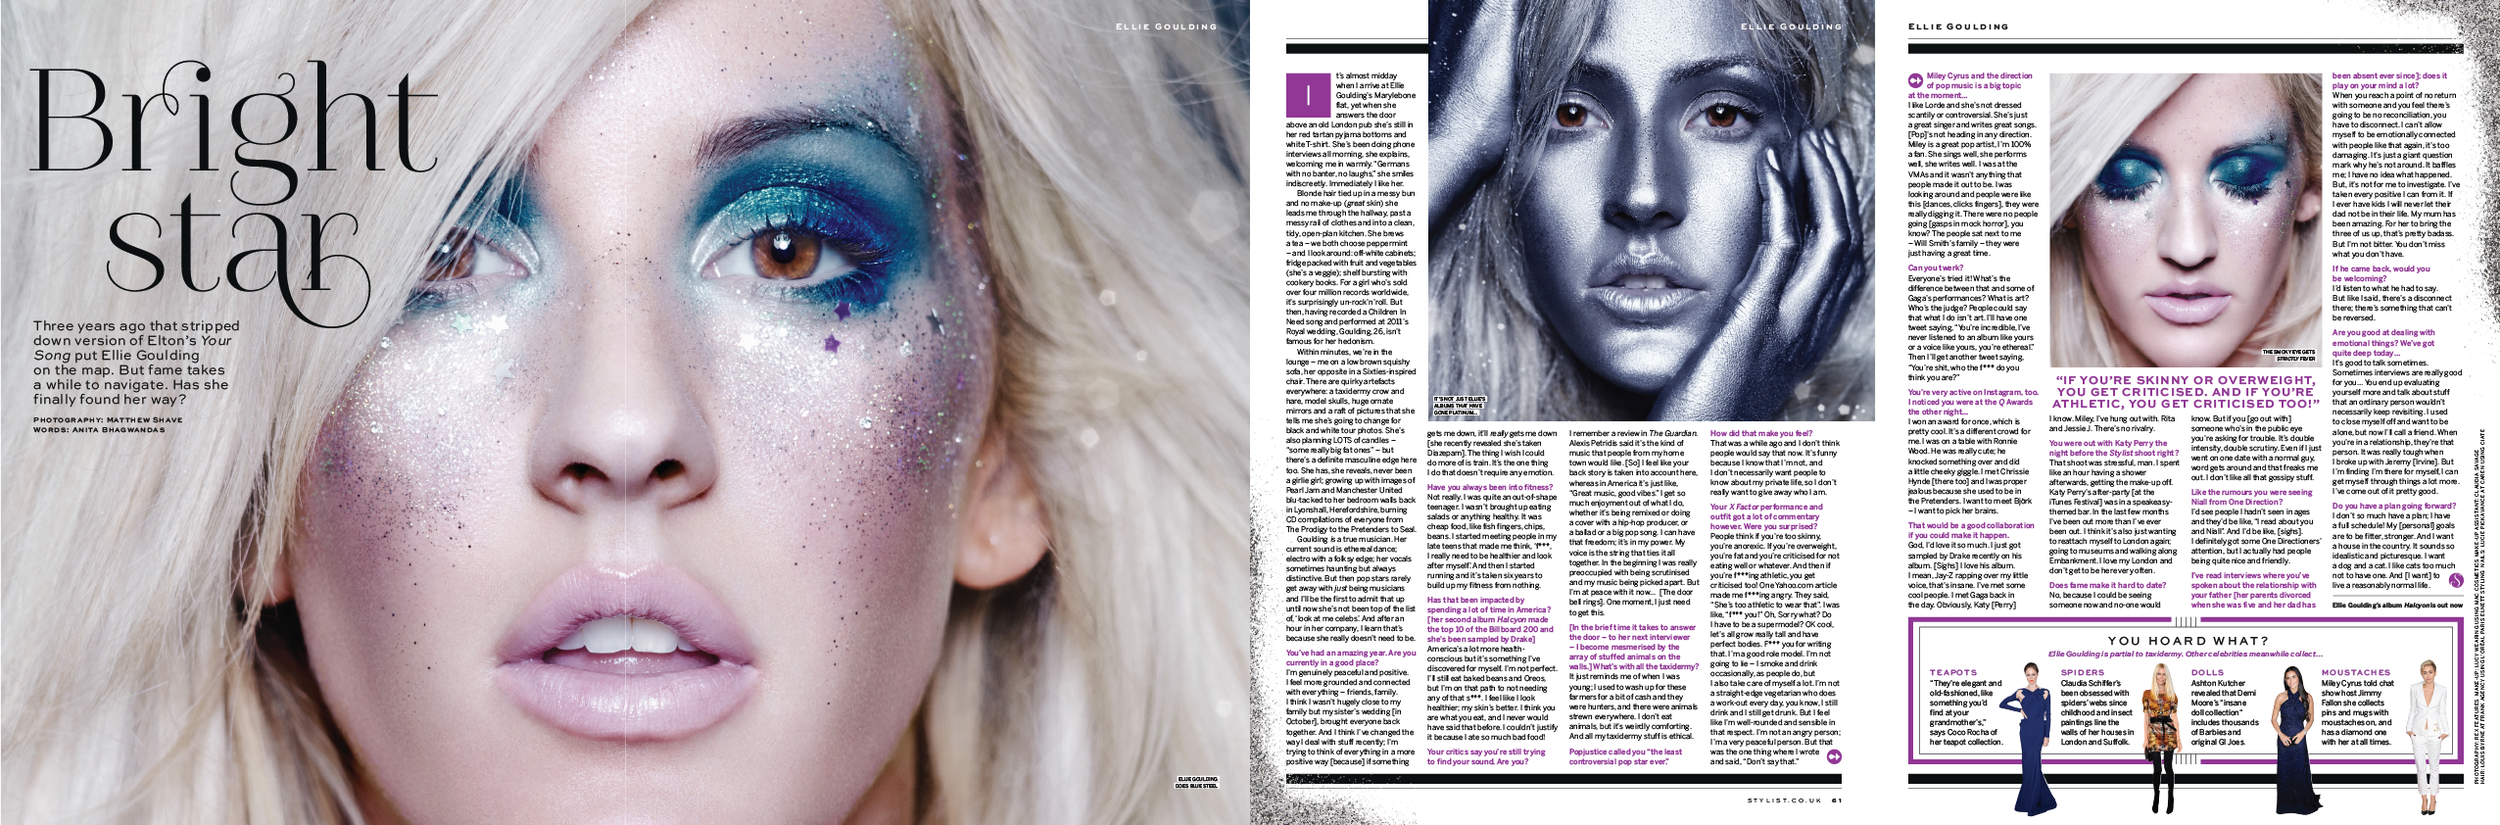 STYLIST - COVER INTERVIEW ELLIE GOULDING